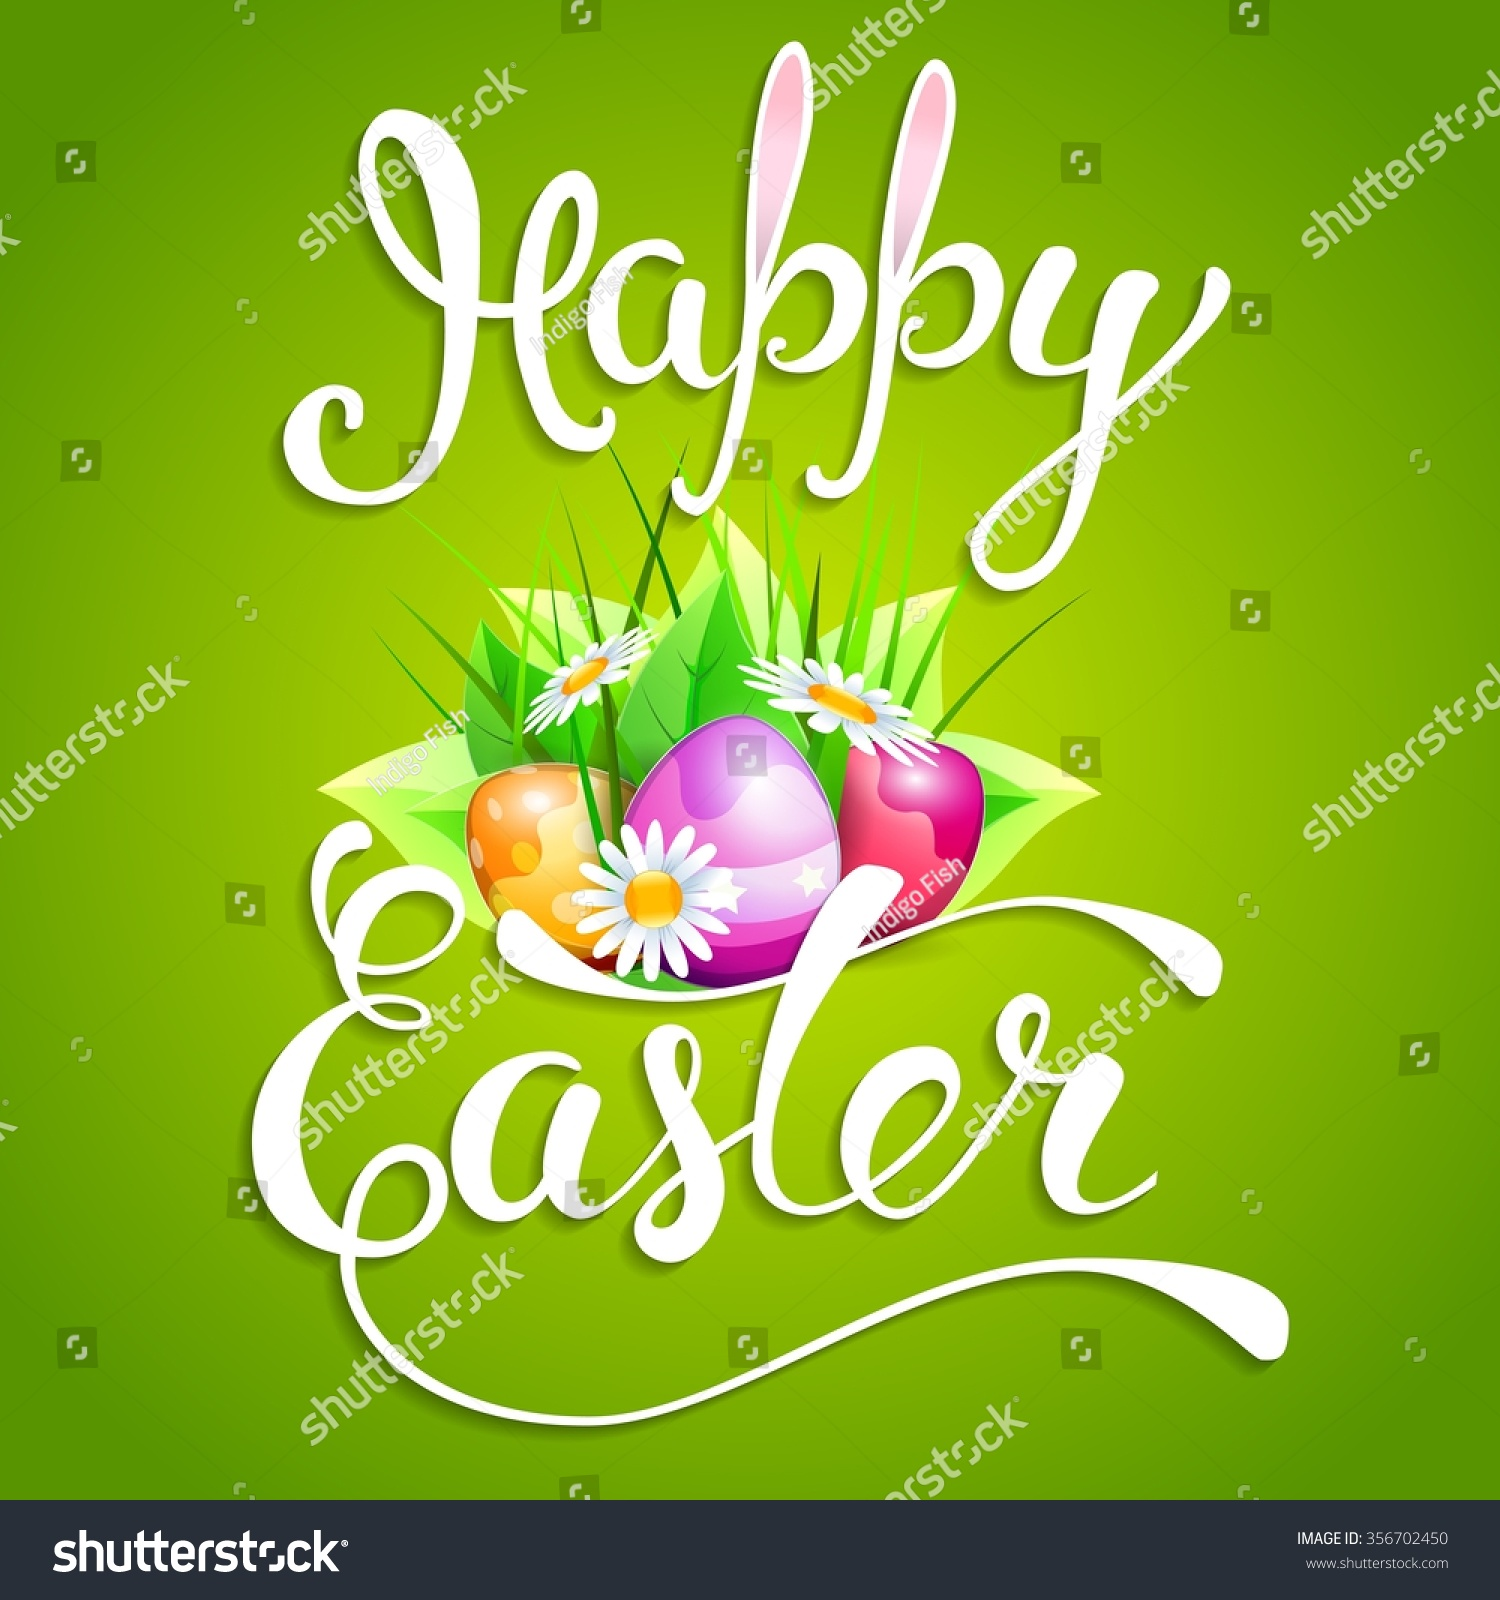 Easter Greeting Card With Easter Eggs And Handwritten Text Happy